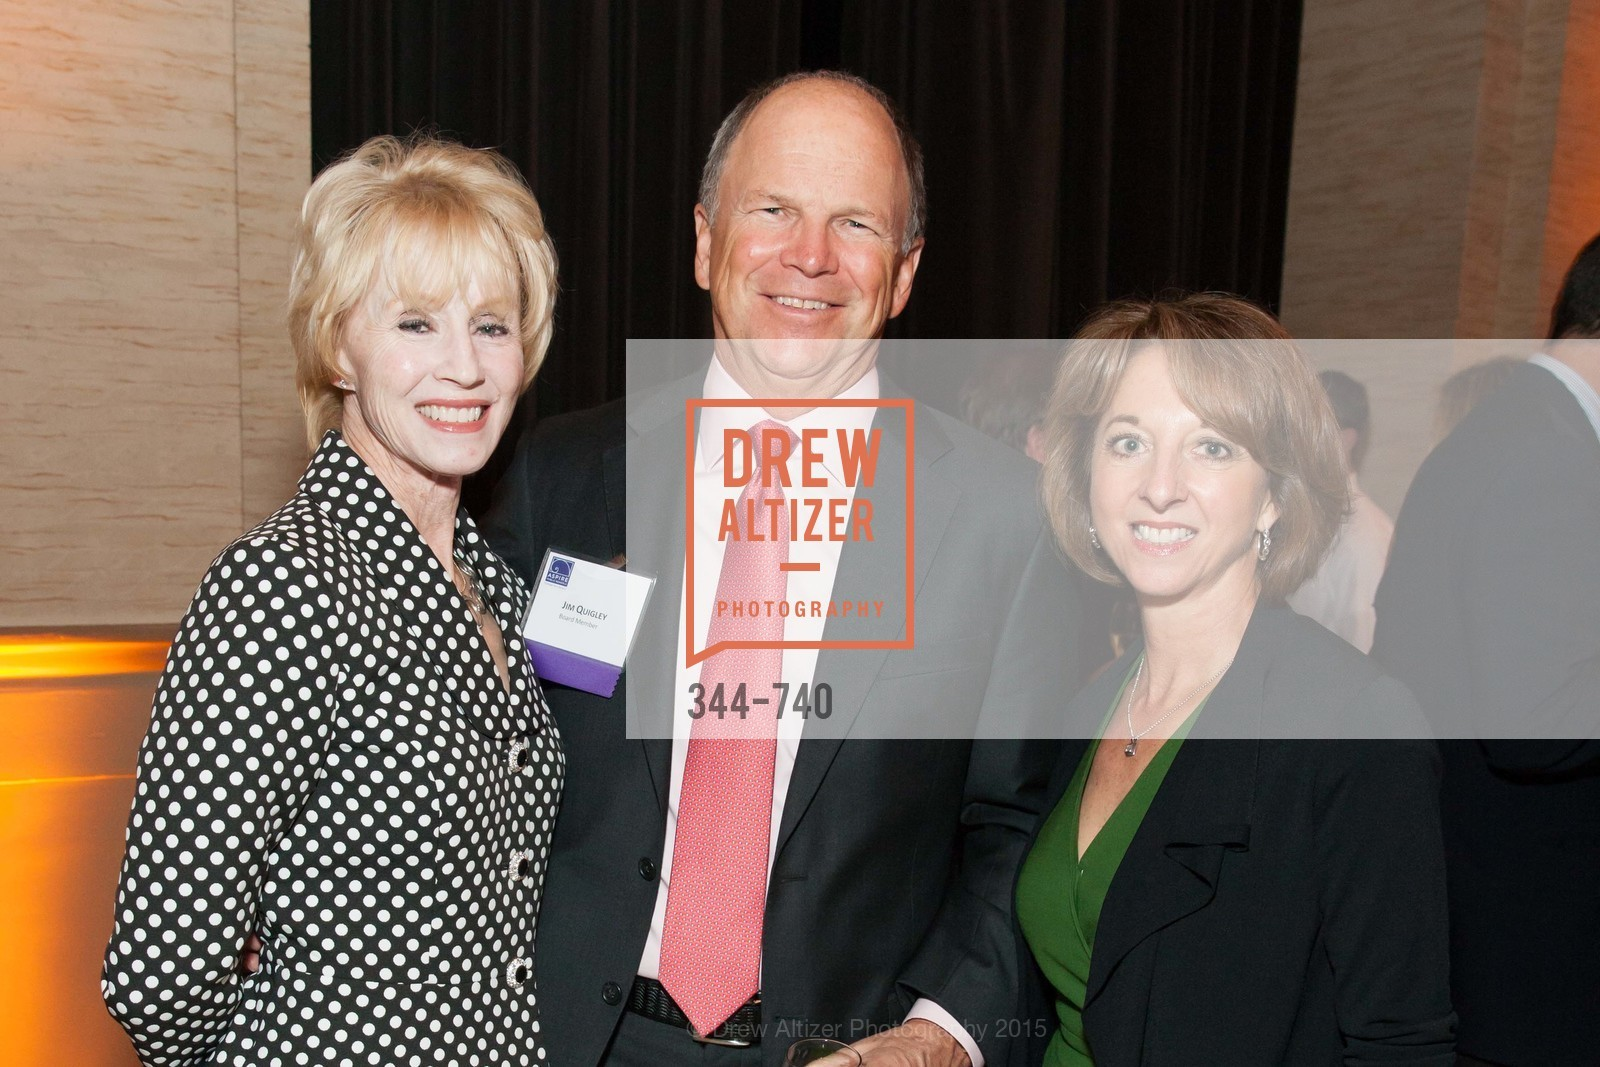 Bonnie Quigley, Jim Quigley, Teresa Briggs, Aspire Annual College for Certain Dinne, US, May 20th, 2015,Drew Altizer, Drew Altizer Photography, full-service agency, private events, San Francisco photographer, photographer california